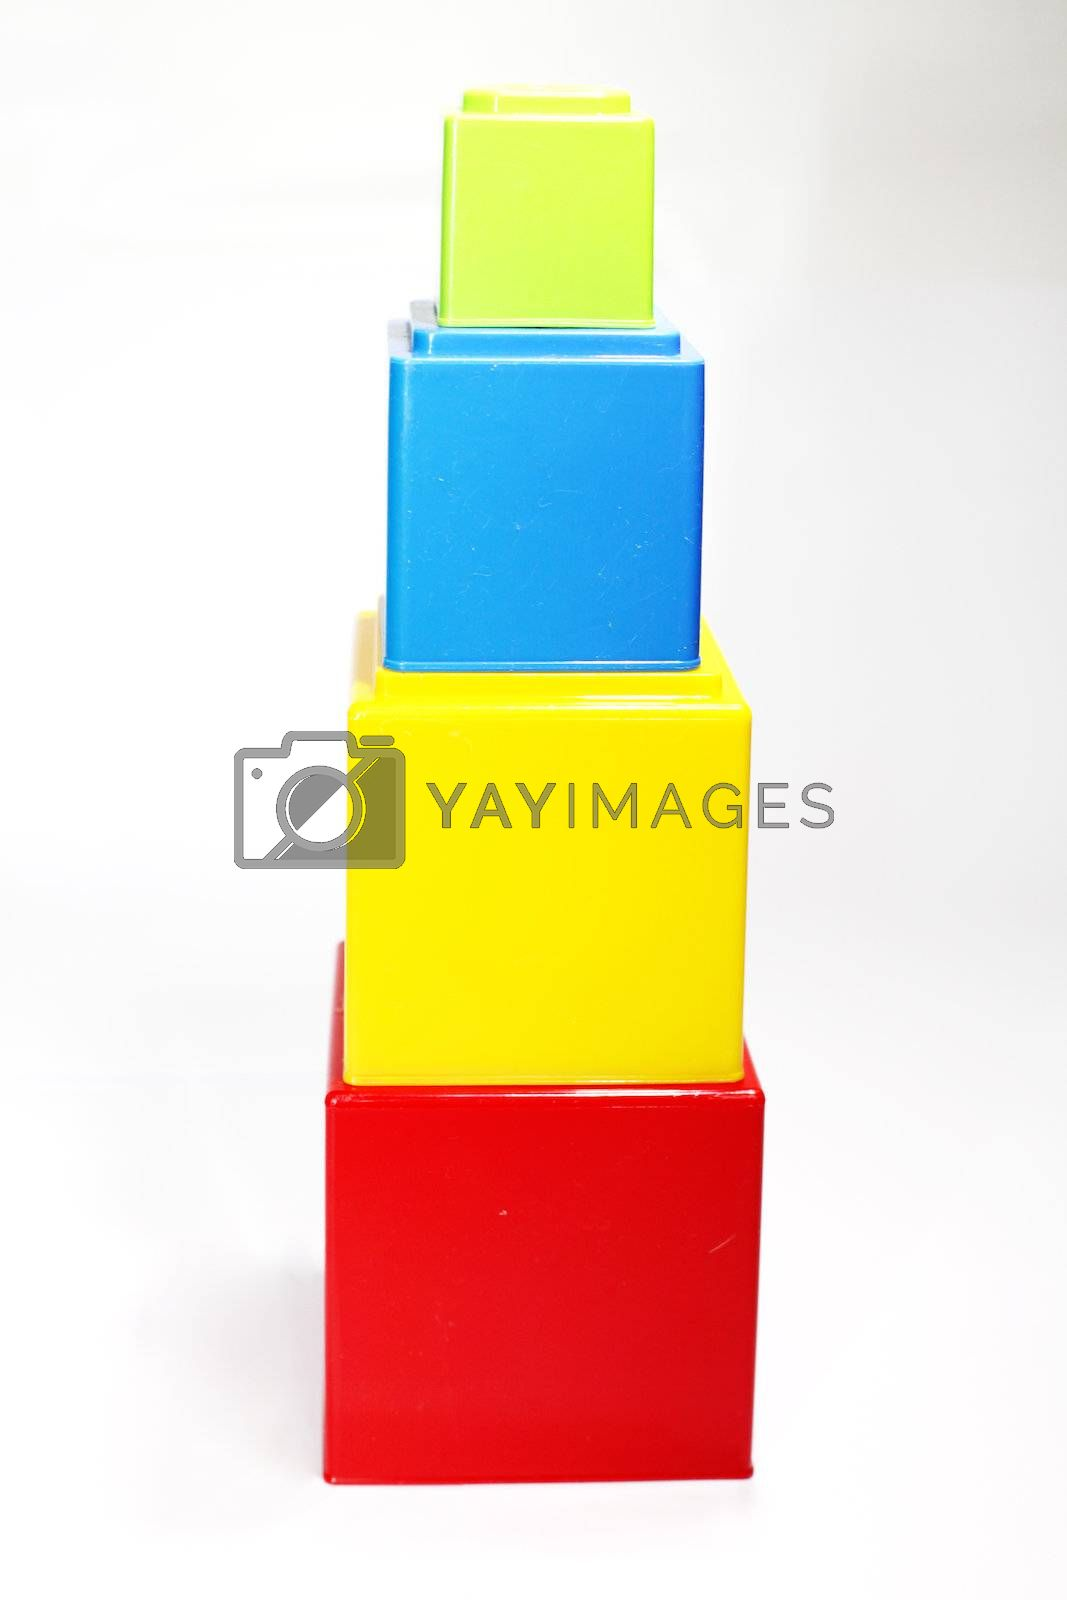 tower made of colorful plastic cubes